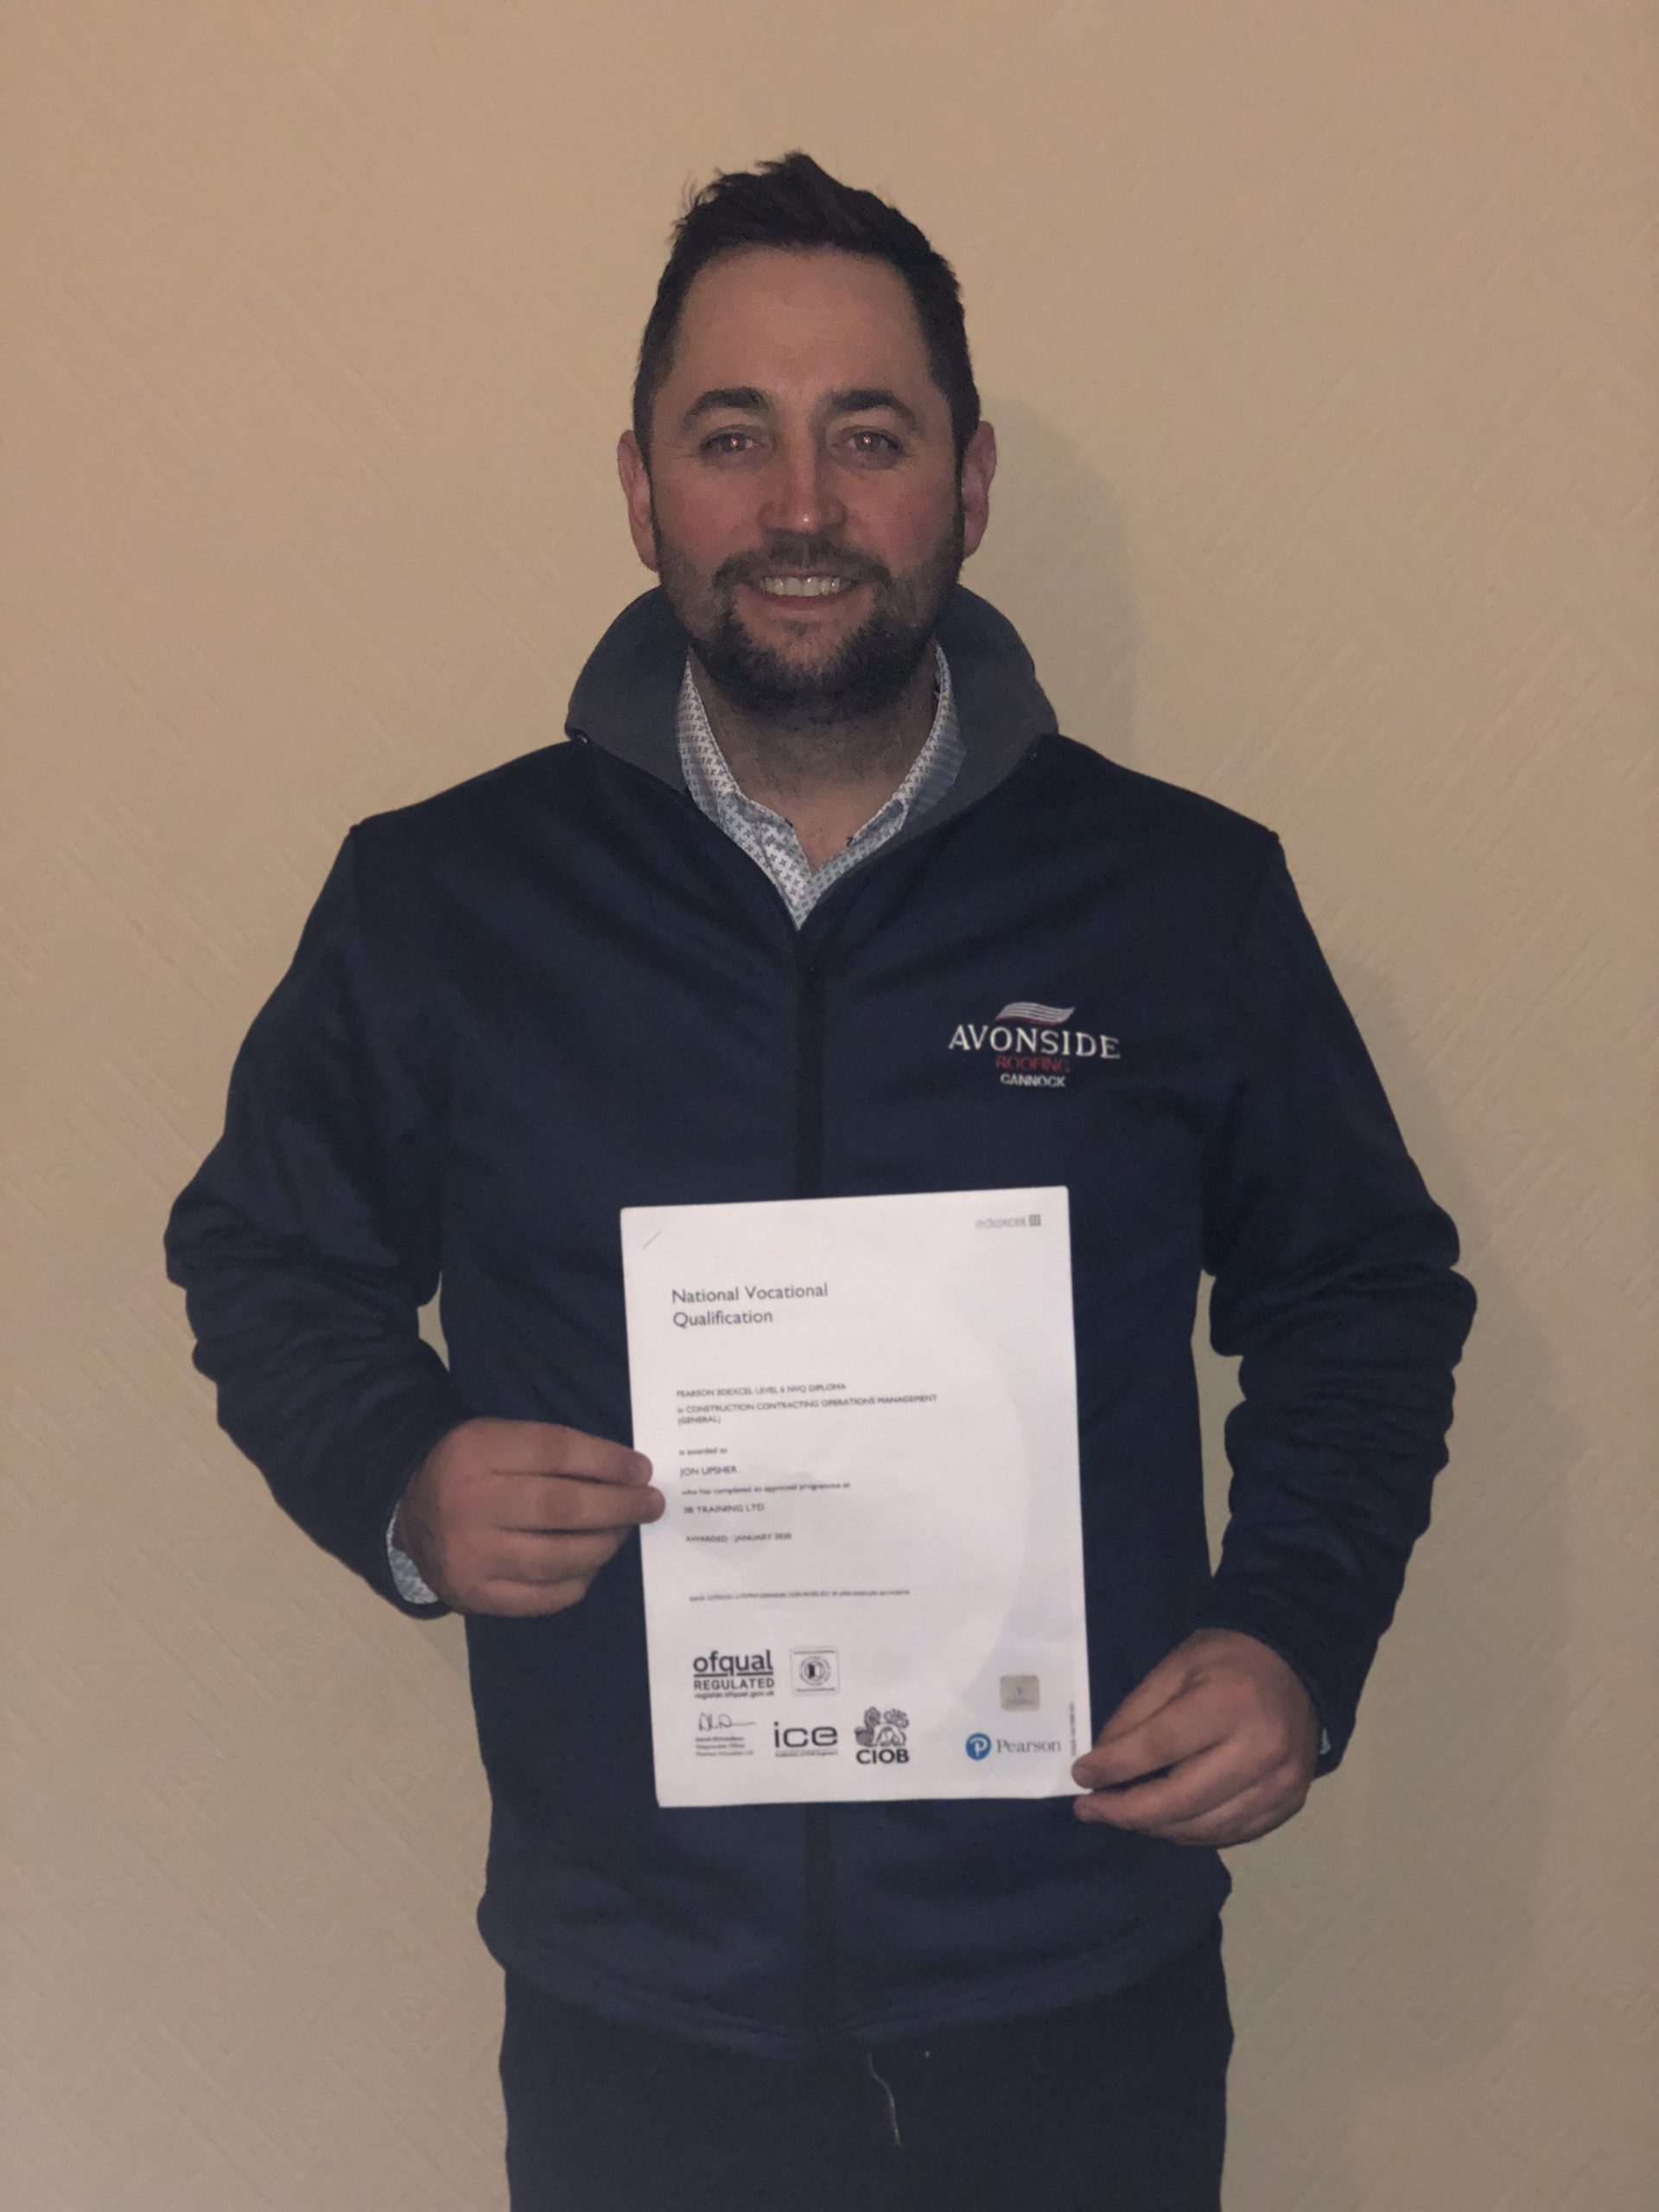 Jon Upsher Avonside Cannock Contracts Manager with his Level 6 Construction Contracting Operations Management NVQ